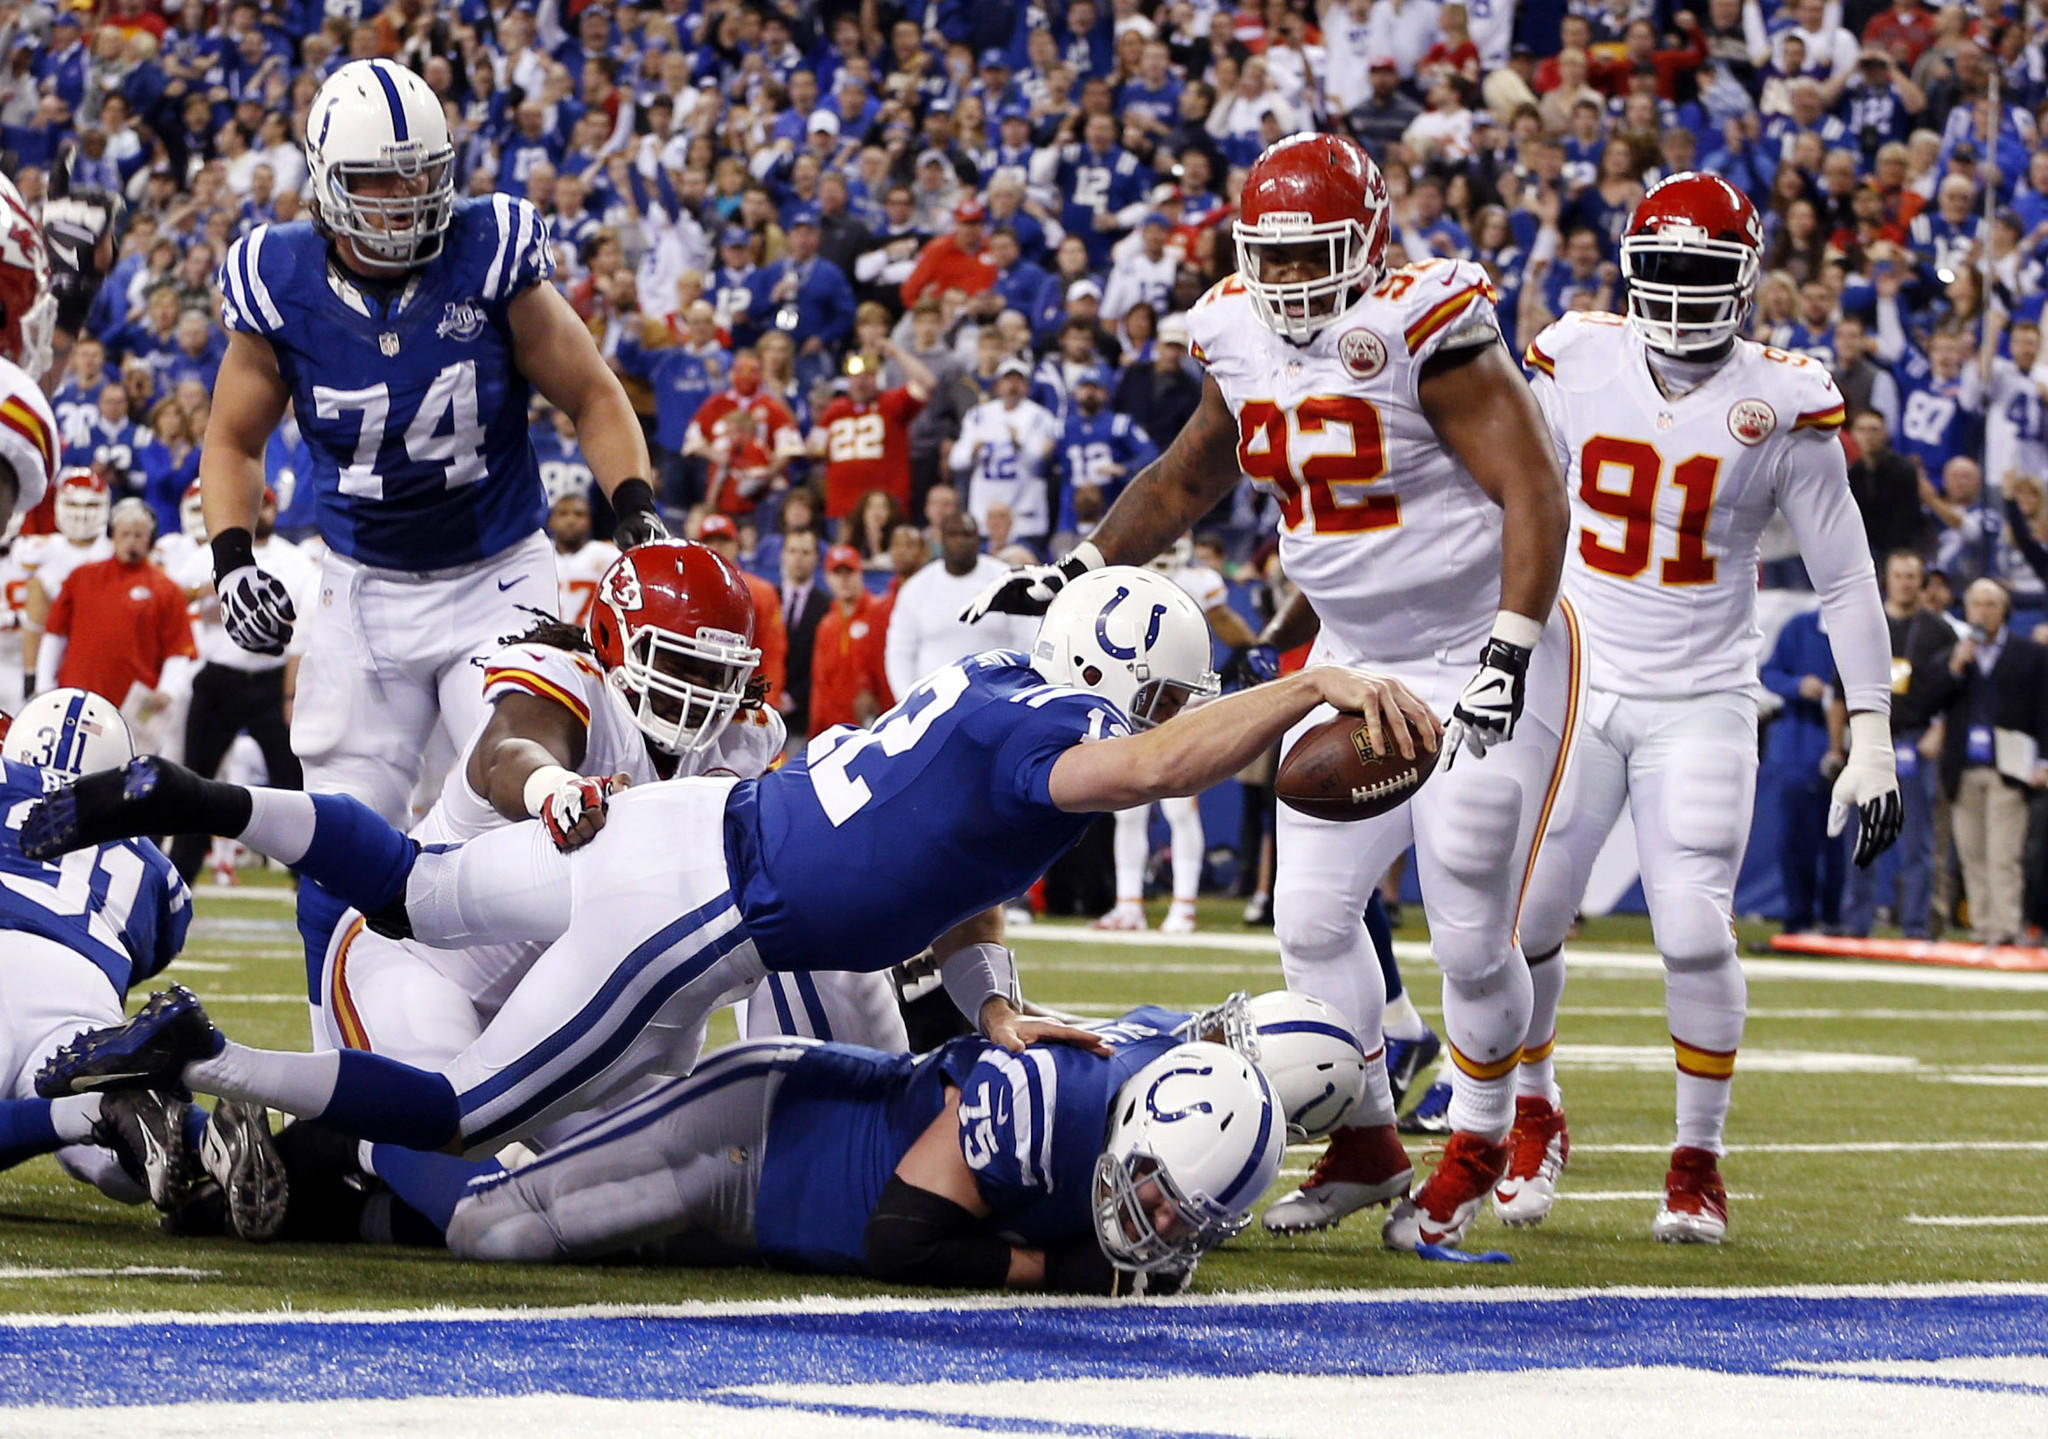 Colts quarterback Andrew Luck dives in for a touchdown against the Chiefs in the fourth quarter.